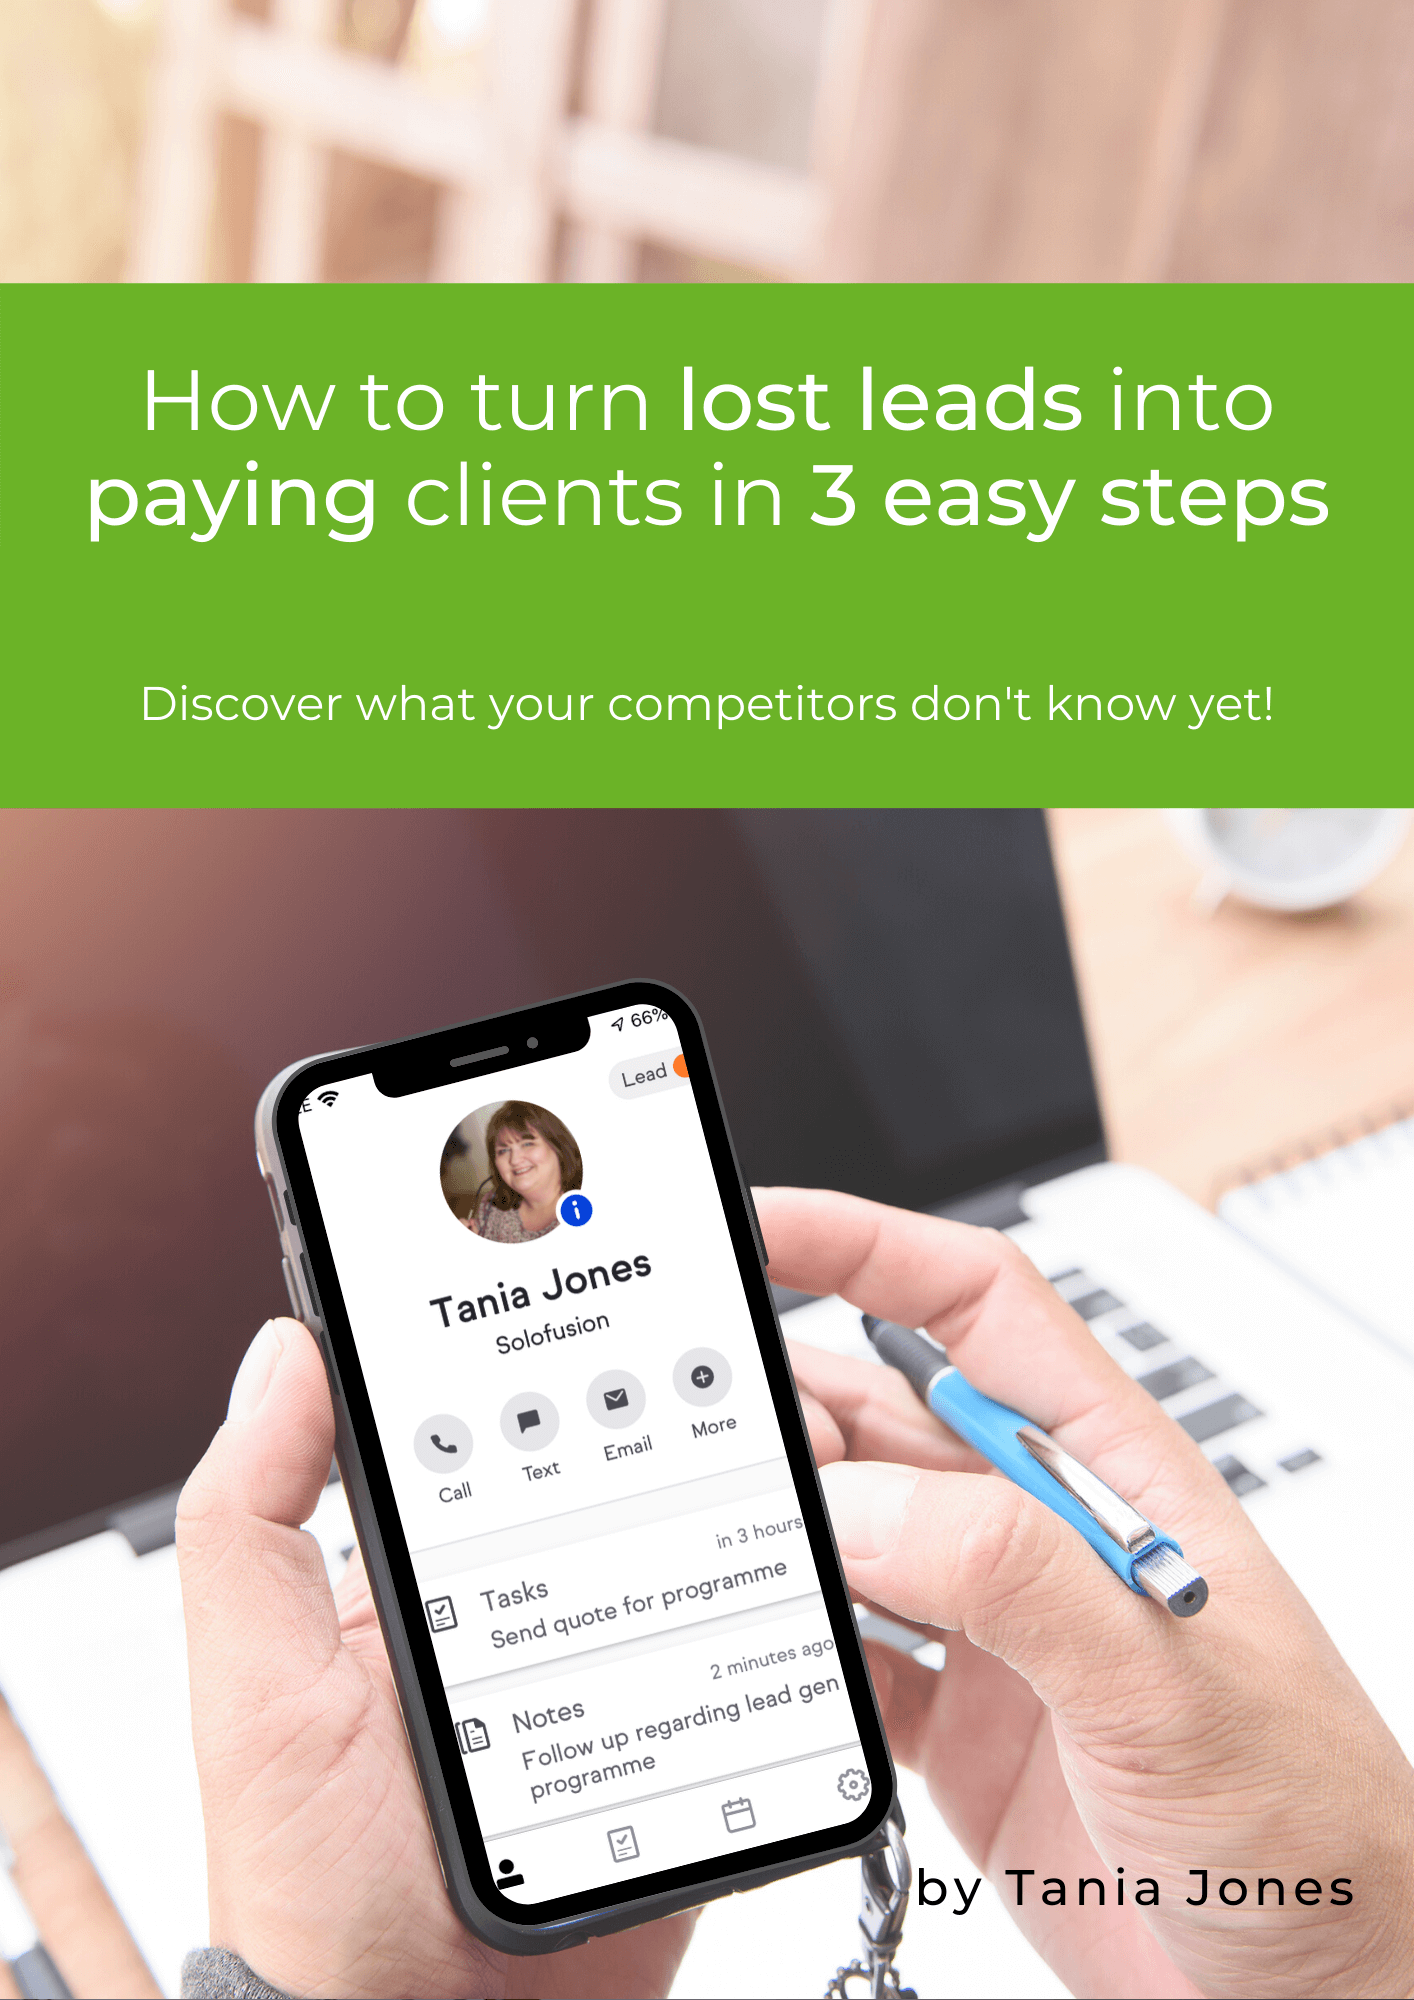 Turn lost leads into paying clients